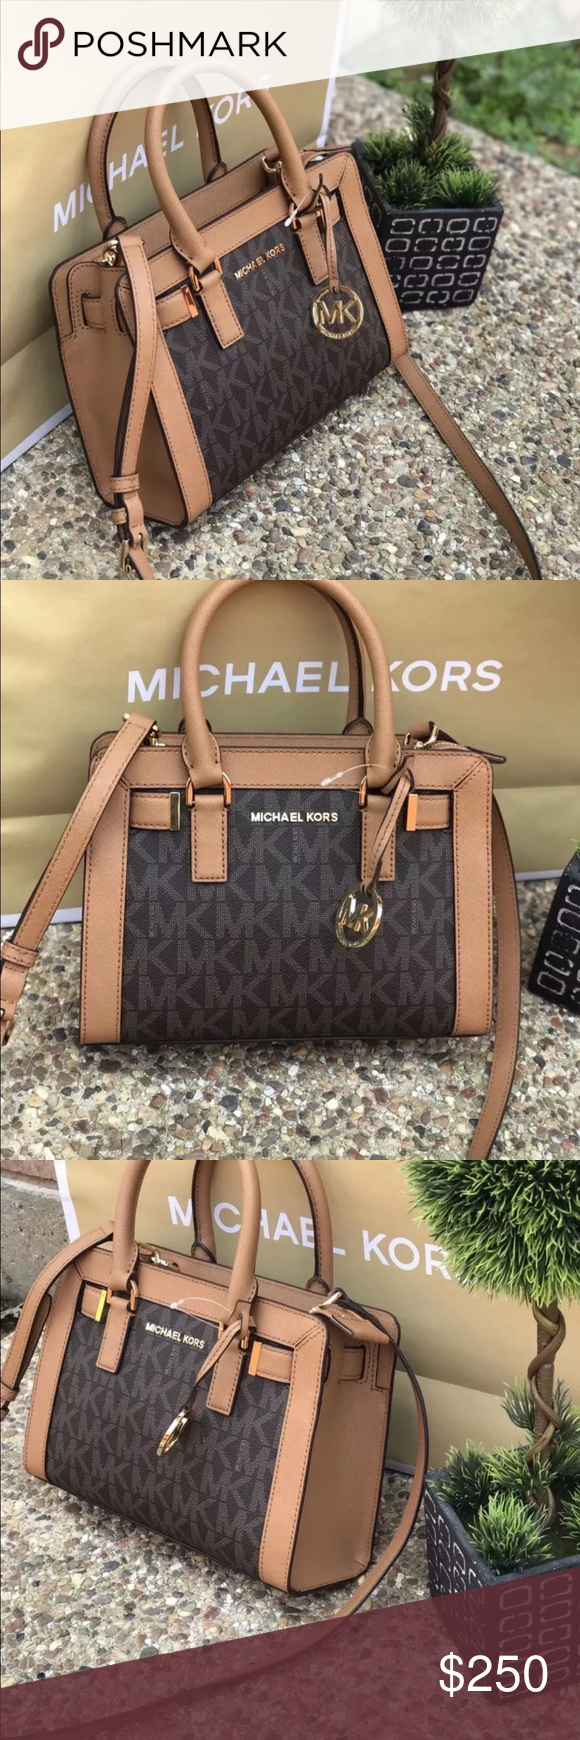 588b3b21e5b5 Michael kors dillon monogrammed satchel bag brown MICHAEL Michael Kors - MK  Dillon Monogram Small Satchel